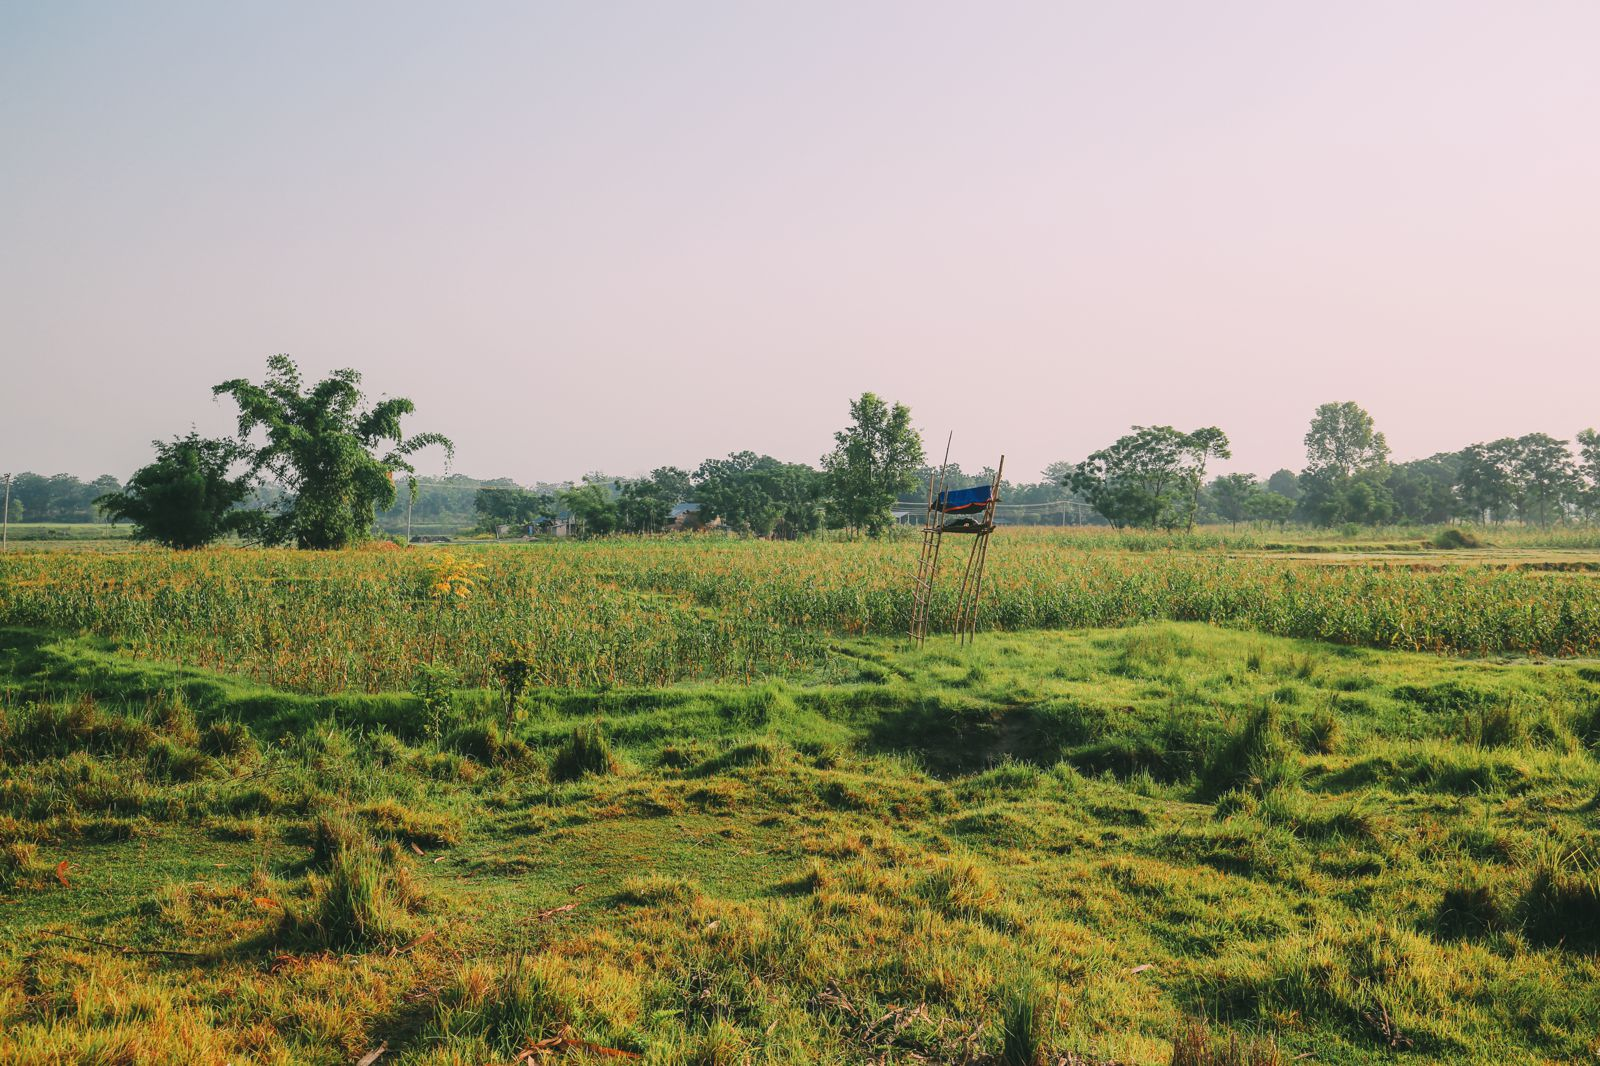 The Sights, Sounds And People Of Chitwan, Nepal (2)